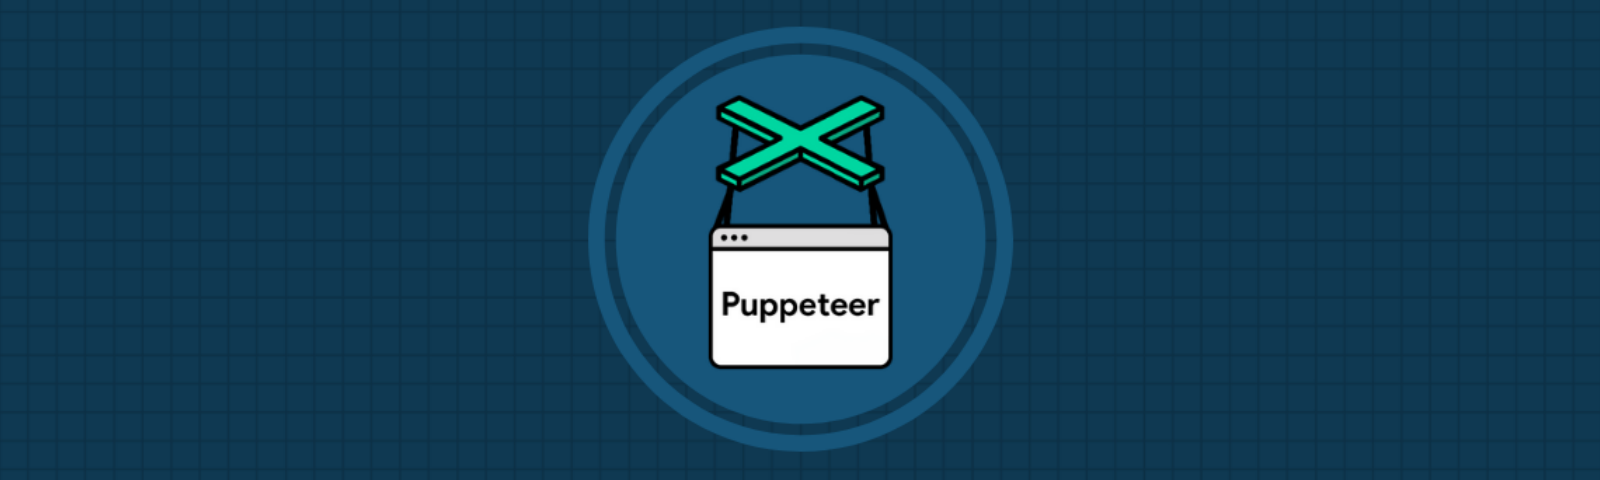 How to disable images and CSS in Puppeteer to speed up web